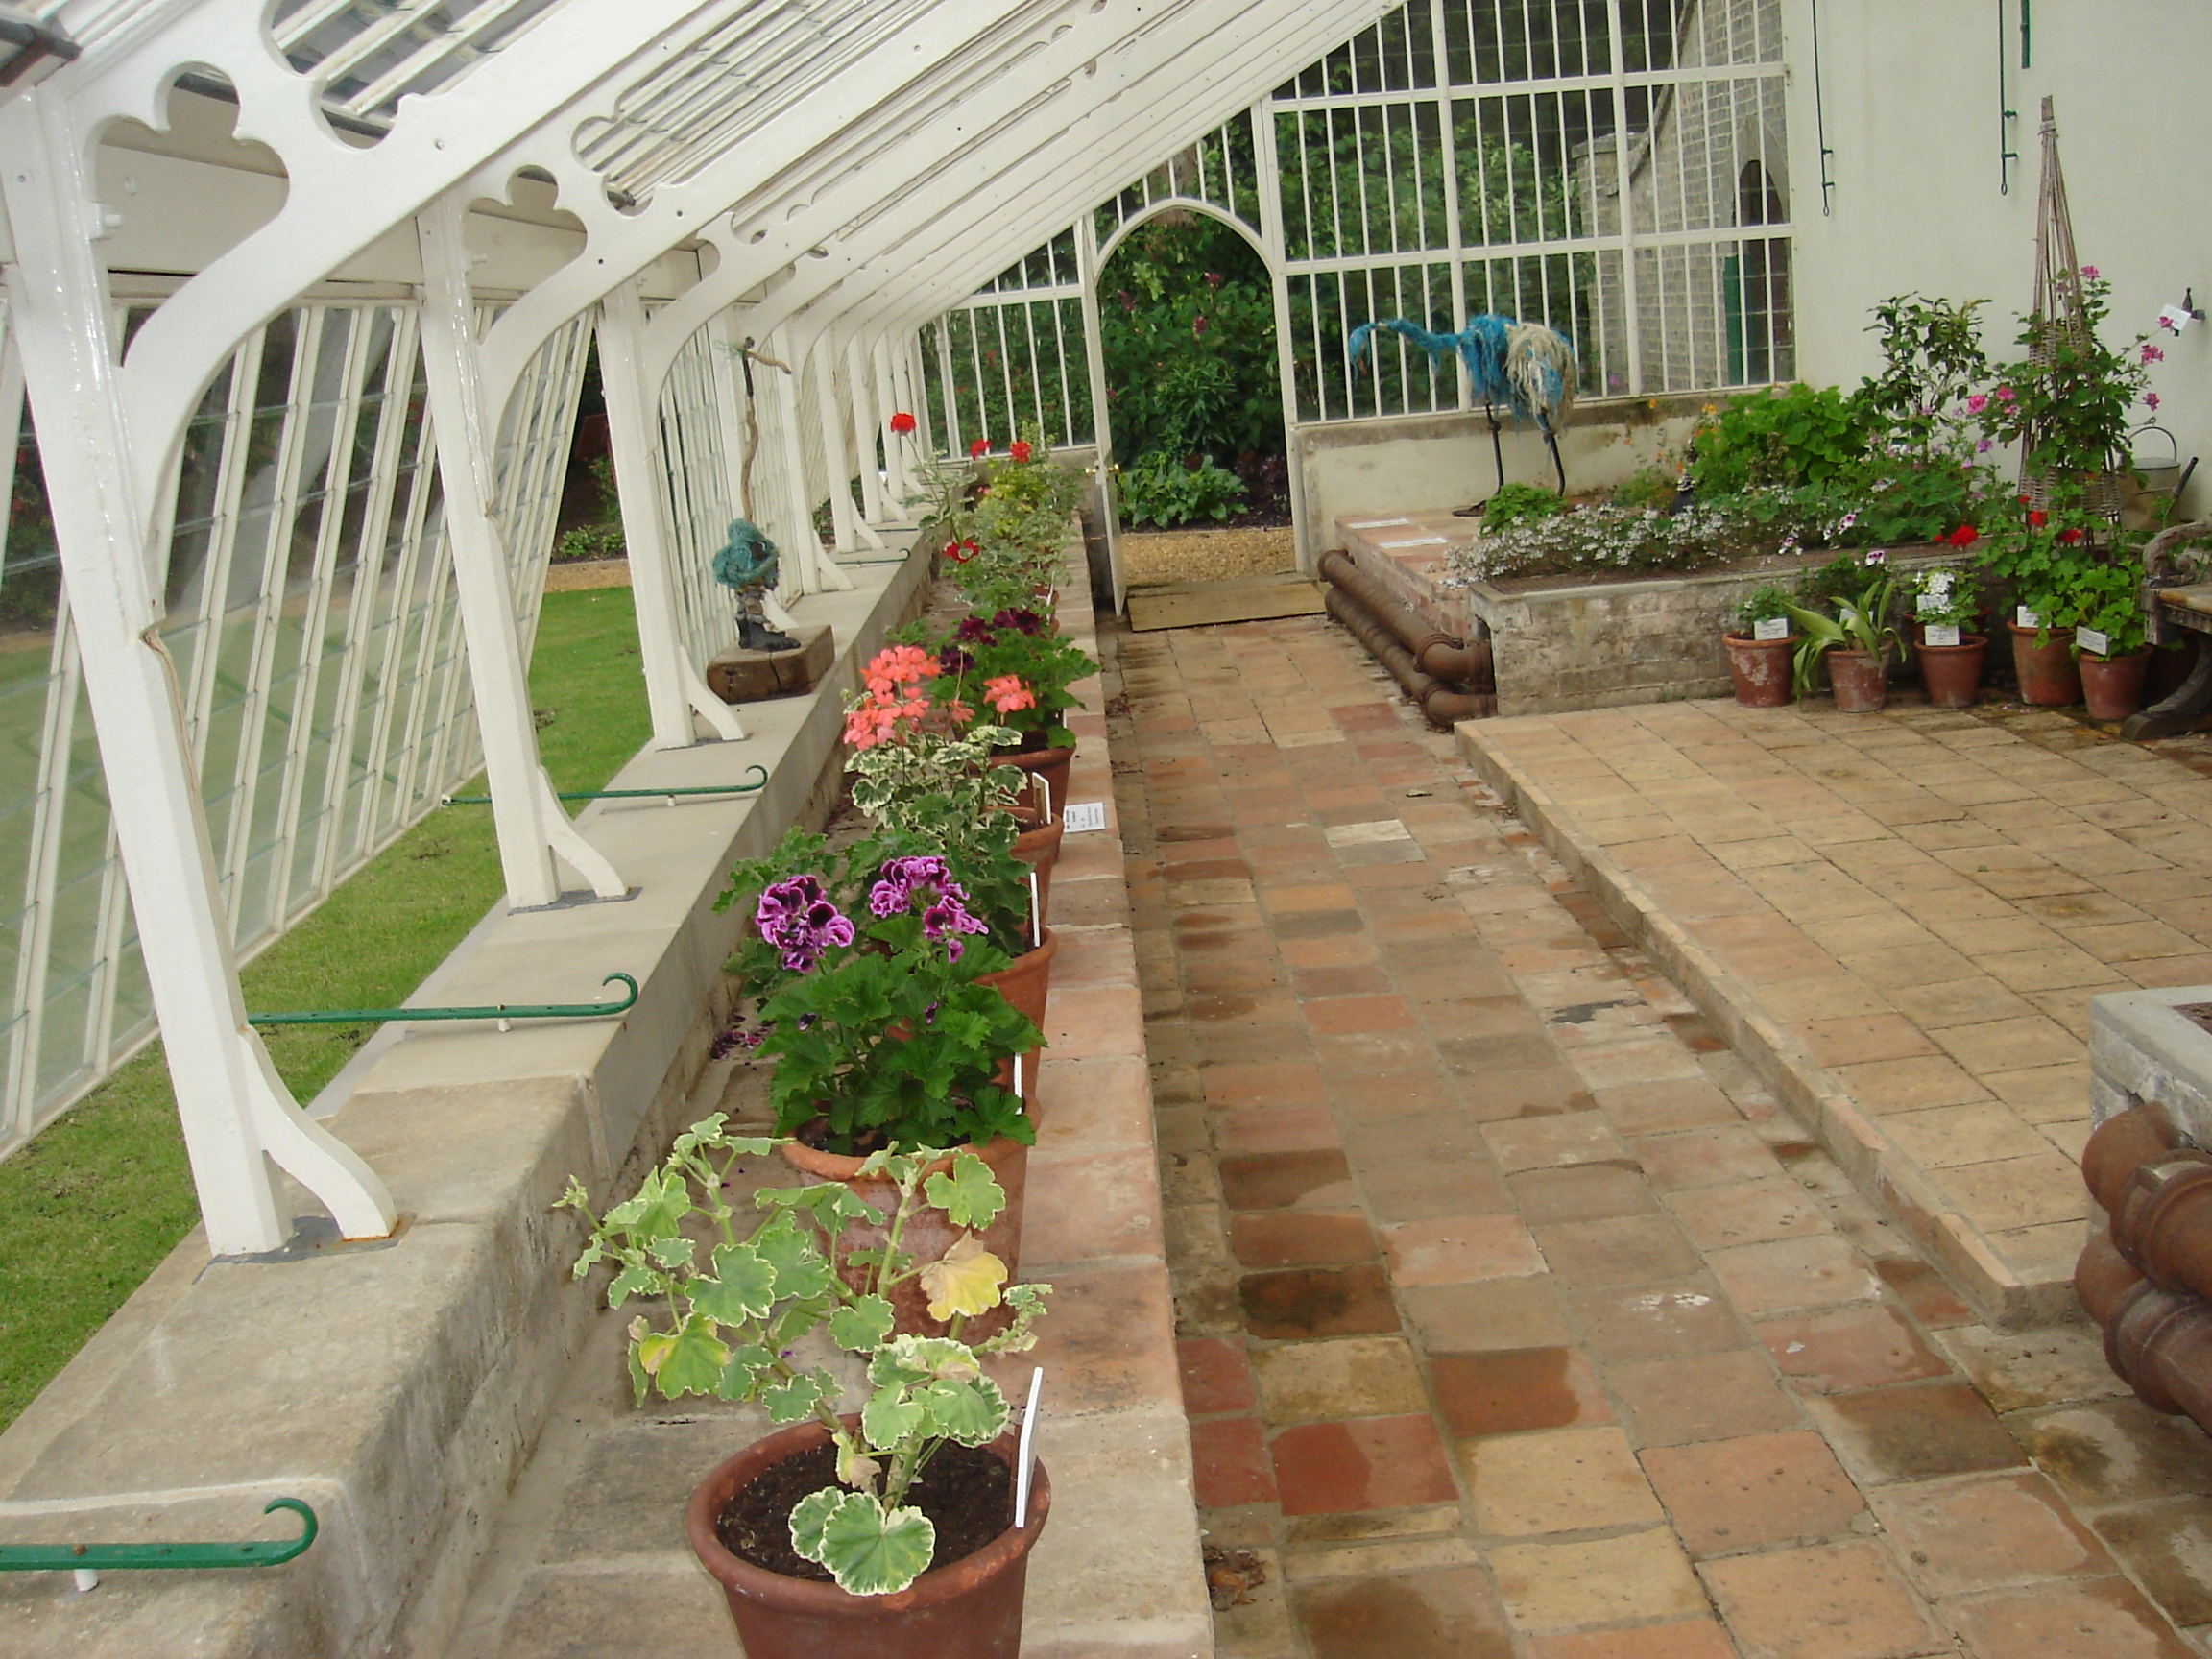 File:Hoveton Hall Gardens Greenhouse Interior.JPG - Wikimedia Commons